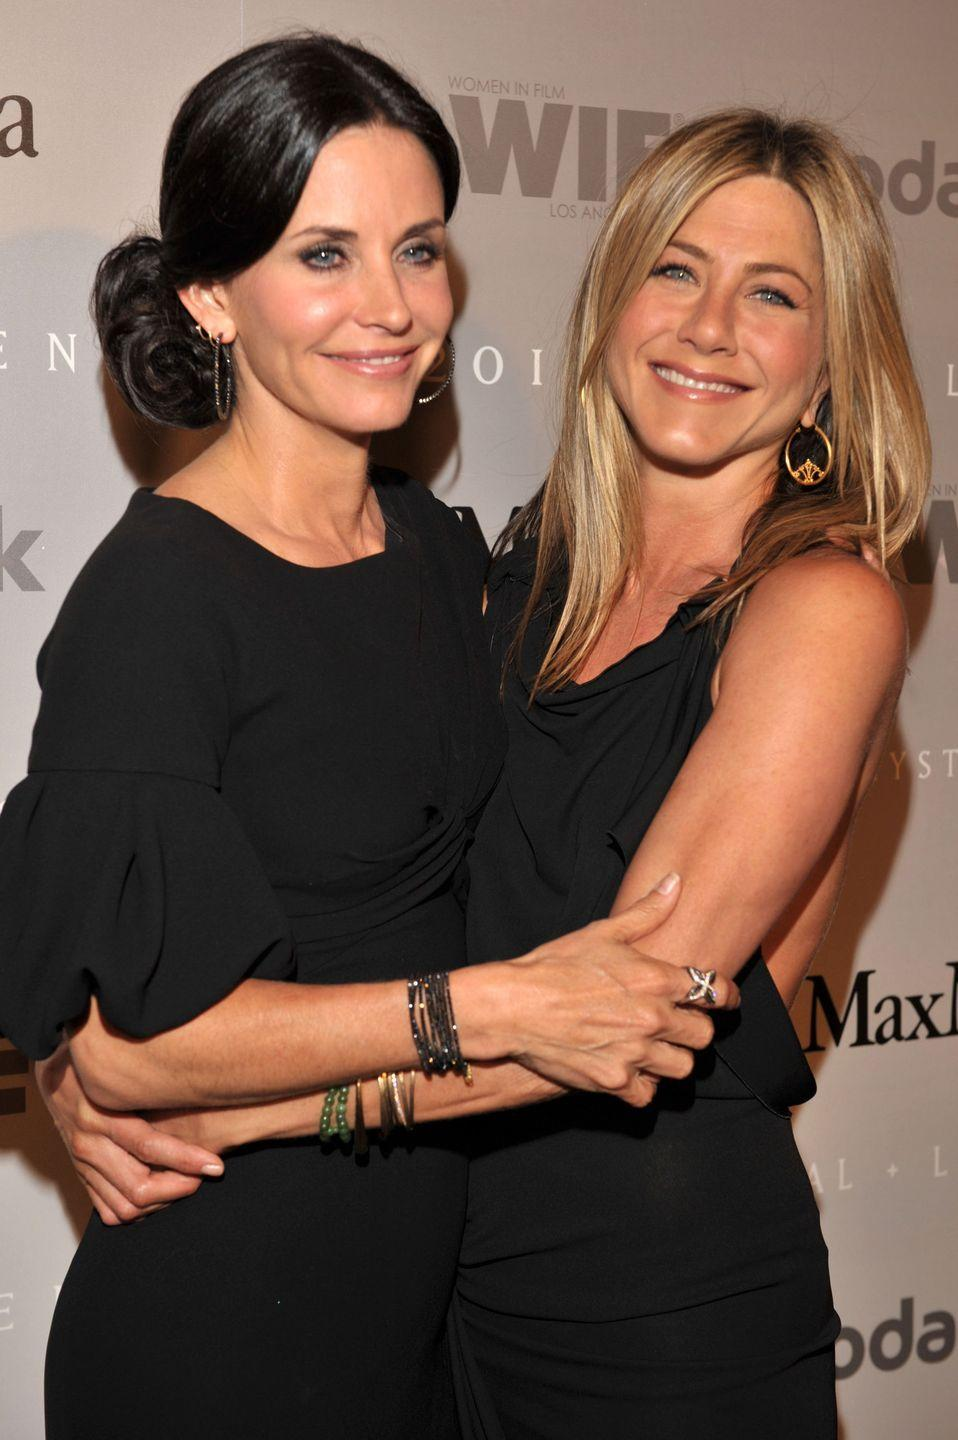 <p>Courteney and Jen aren't just friends on <em>Friends</em>. That relationship is strong off screen, too. It turns out being on a TV show with someone for 10 seasons allows you to form friendships with costars. Who knew?<br></p>